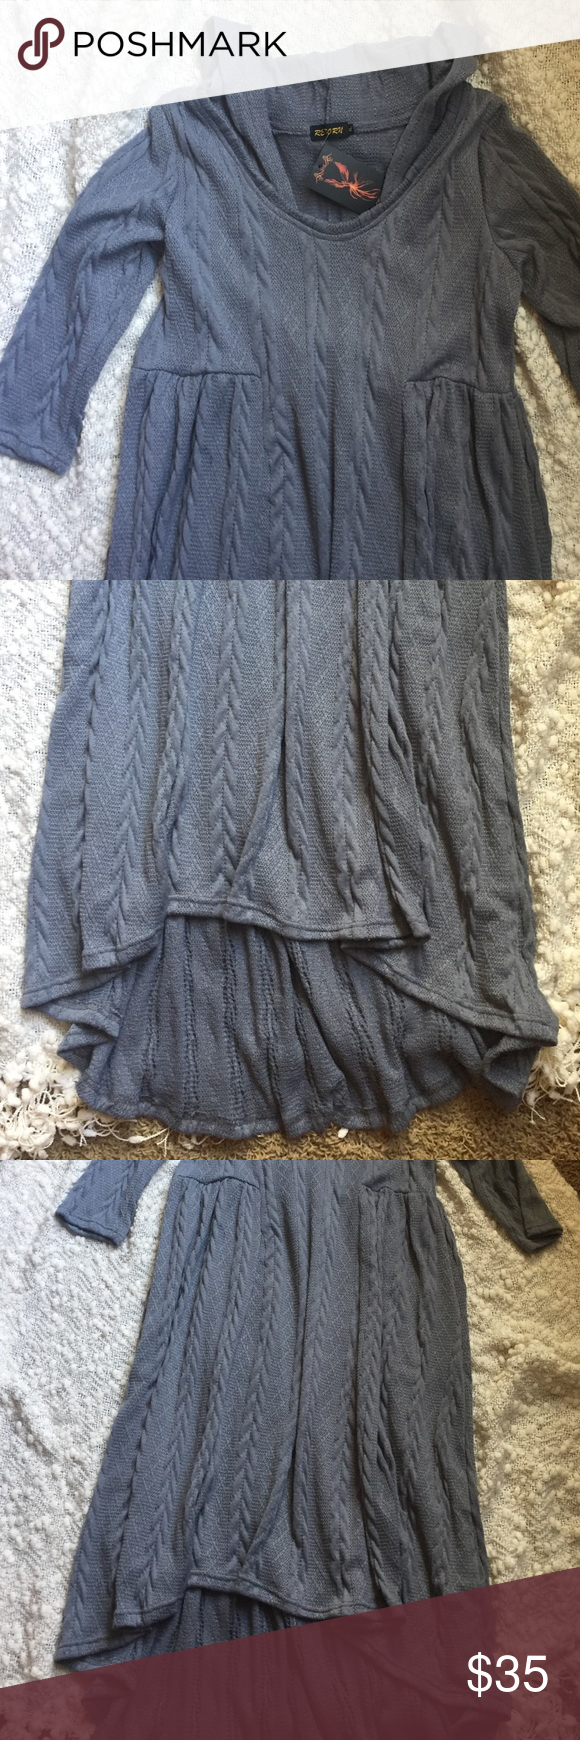 Reborn XL NWT hooded sweater Dress 👗 Brand new with tags / grey dress reborn Dresses High Low